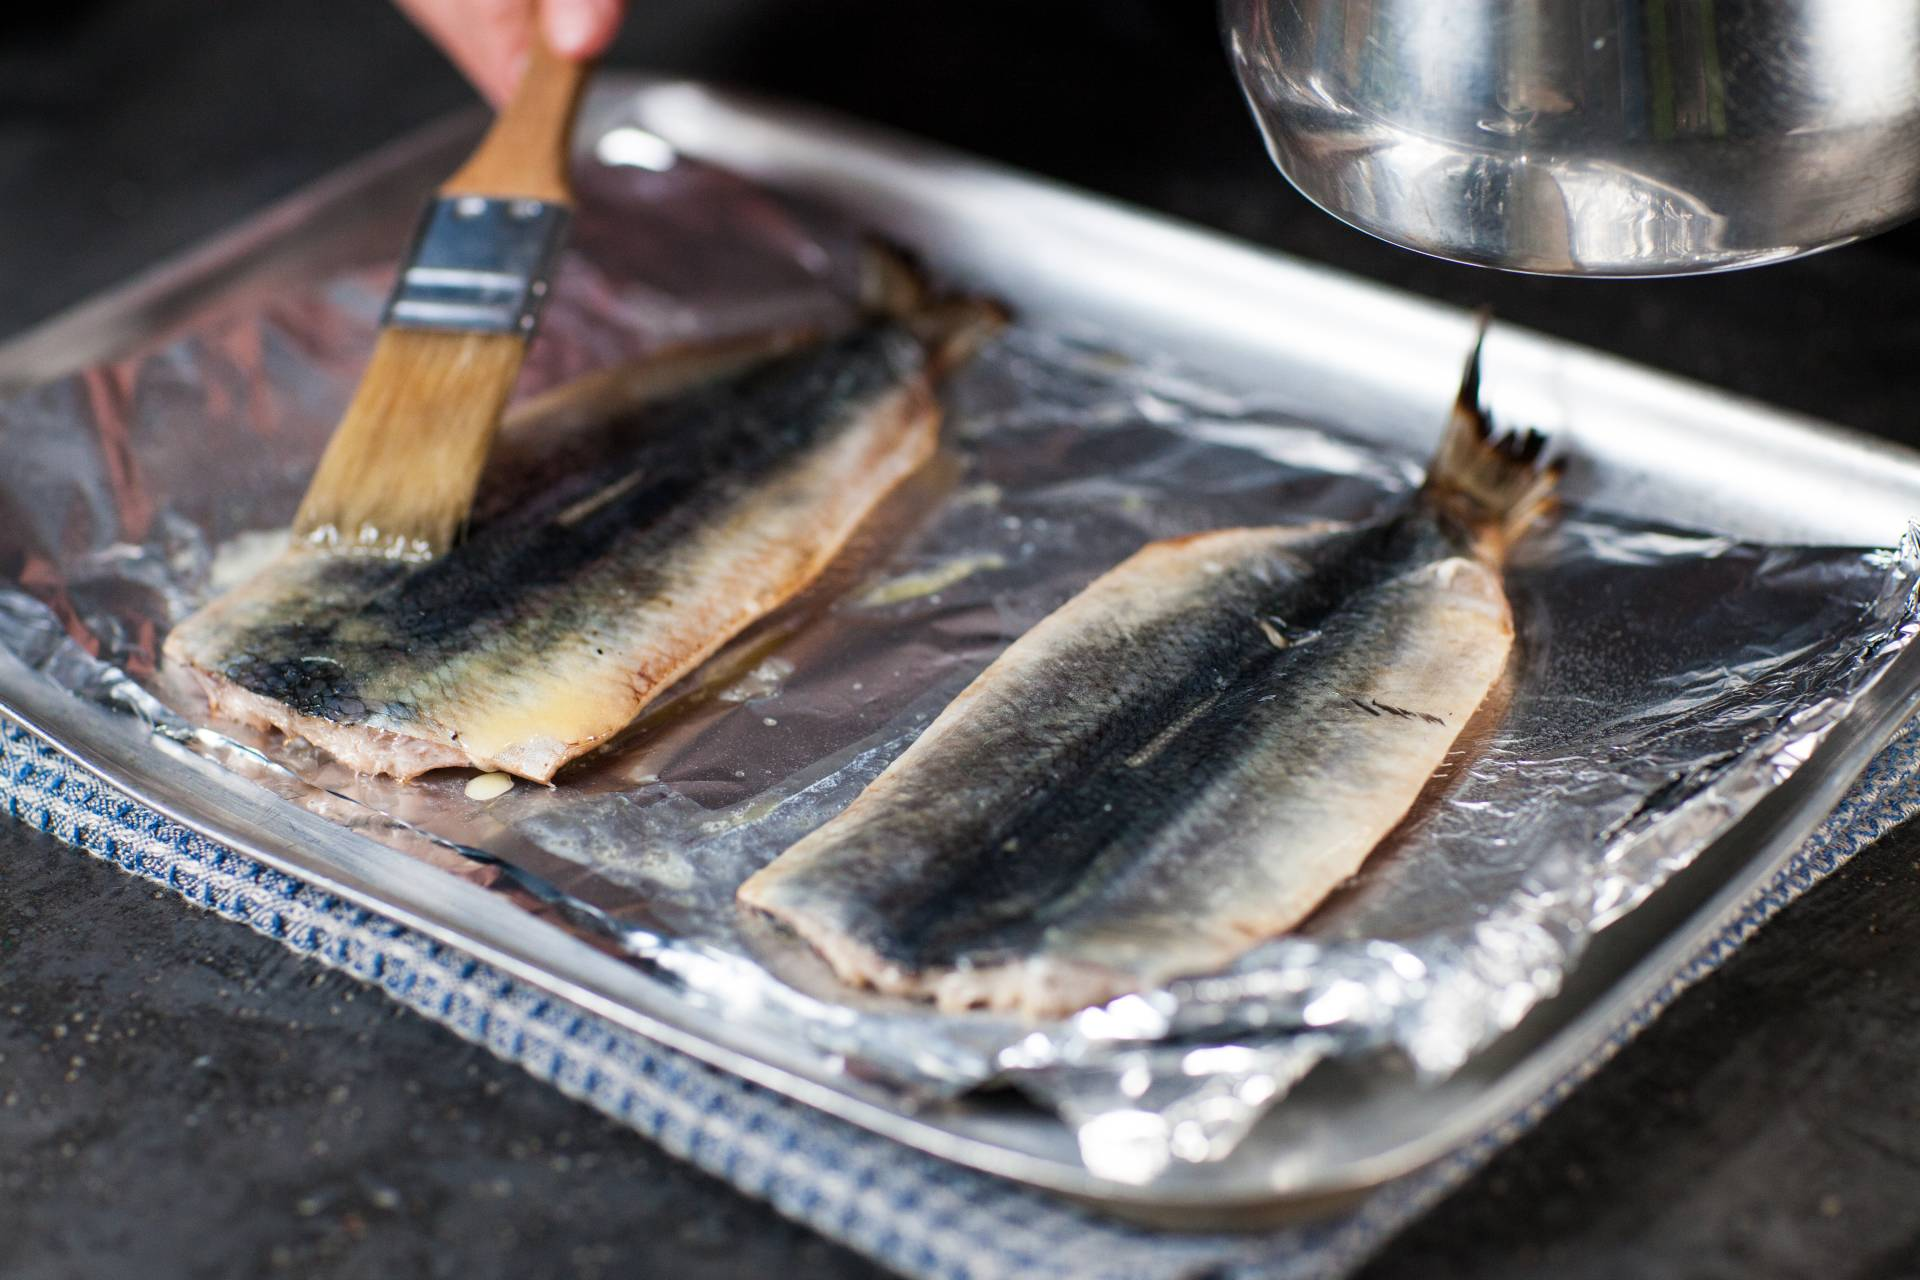 Oil being brushed onto herring on a baking tray